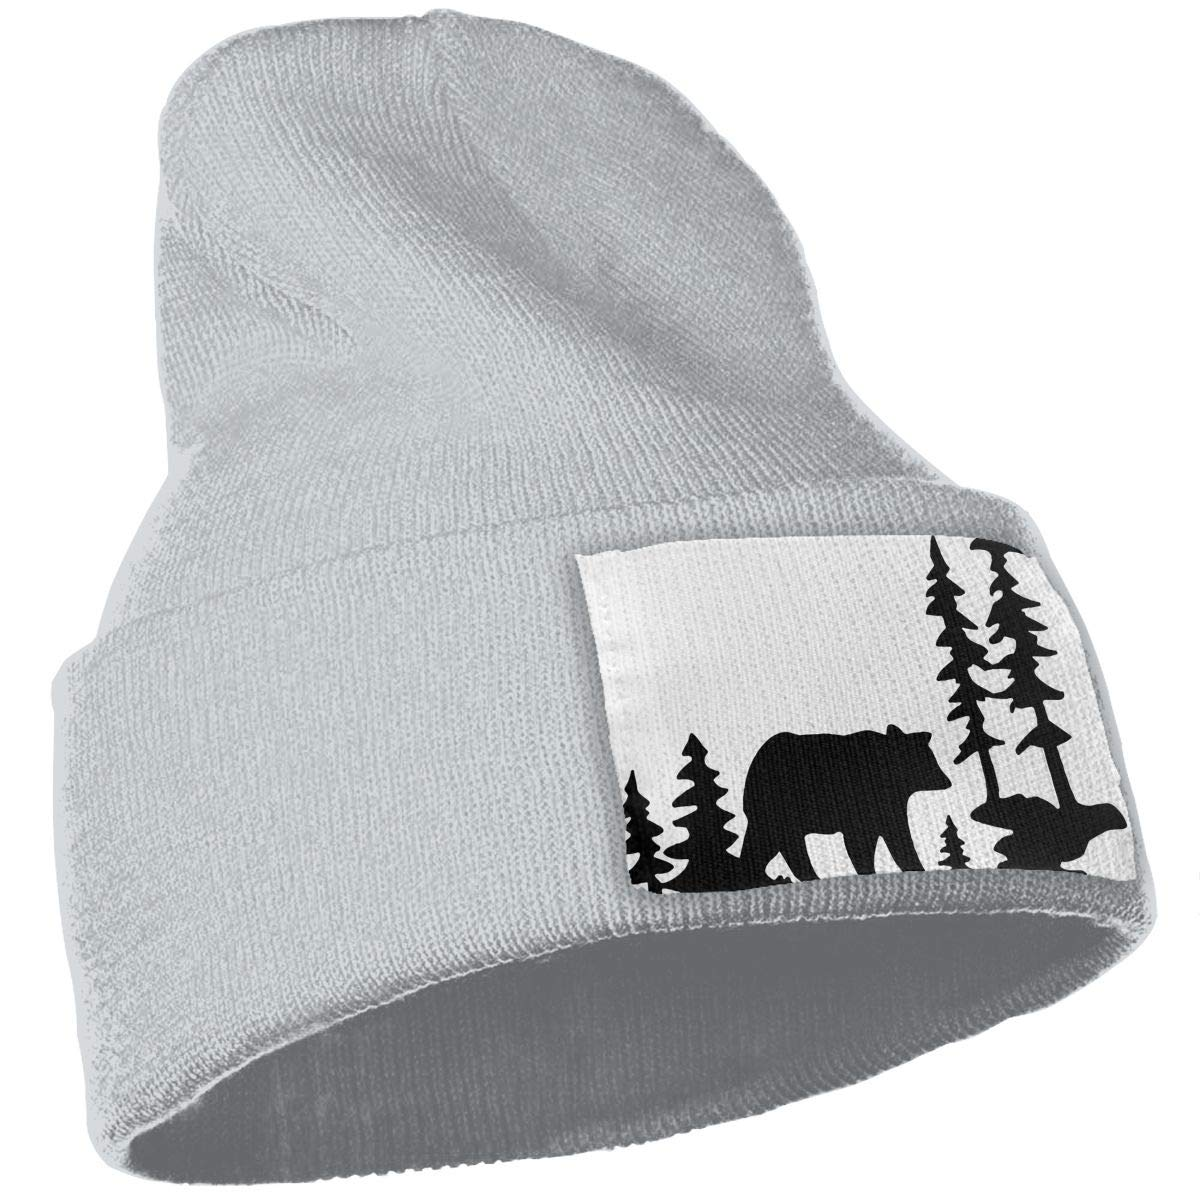 TAOMAP89 Woodland Bear Forest Women and Men Skull Caps Winter Warm Stretchy Knit Beanie Hats